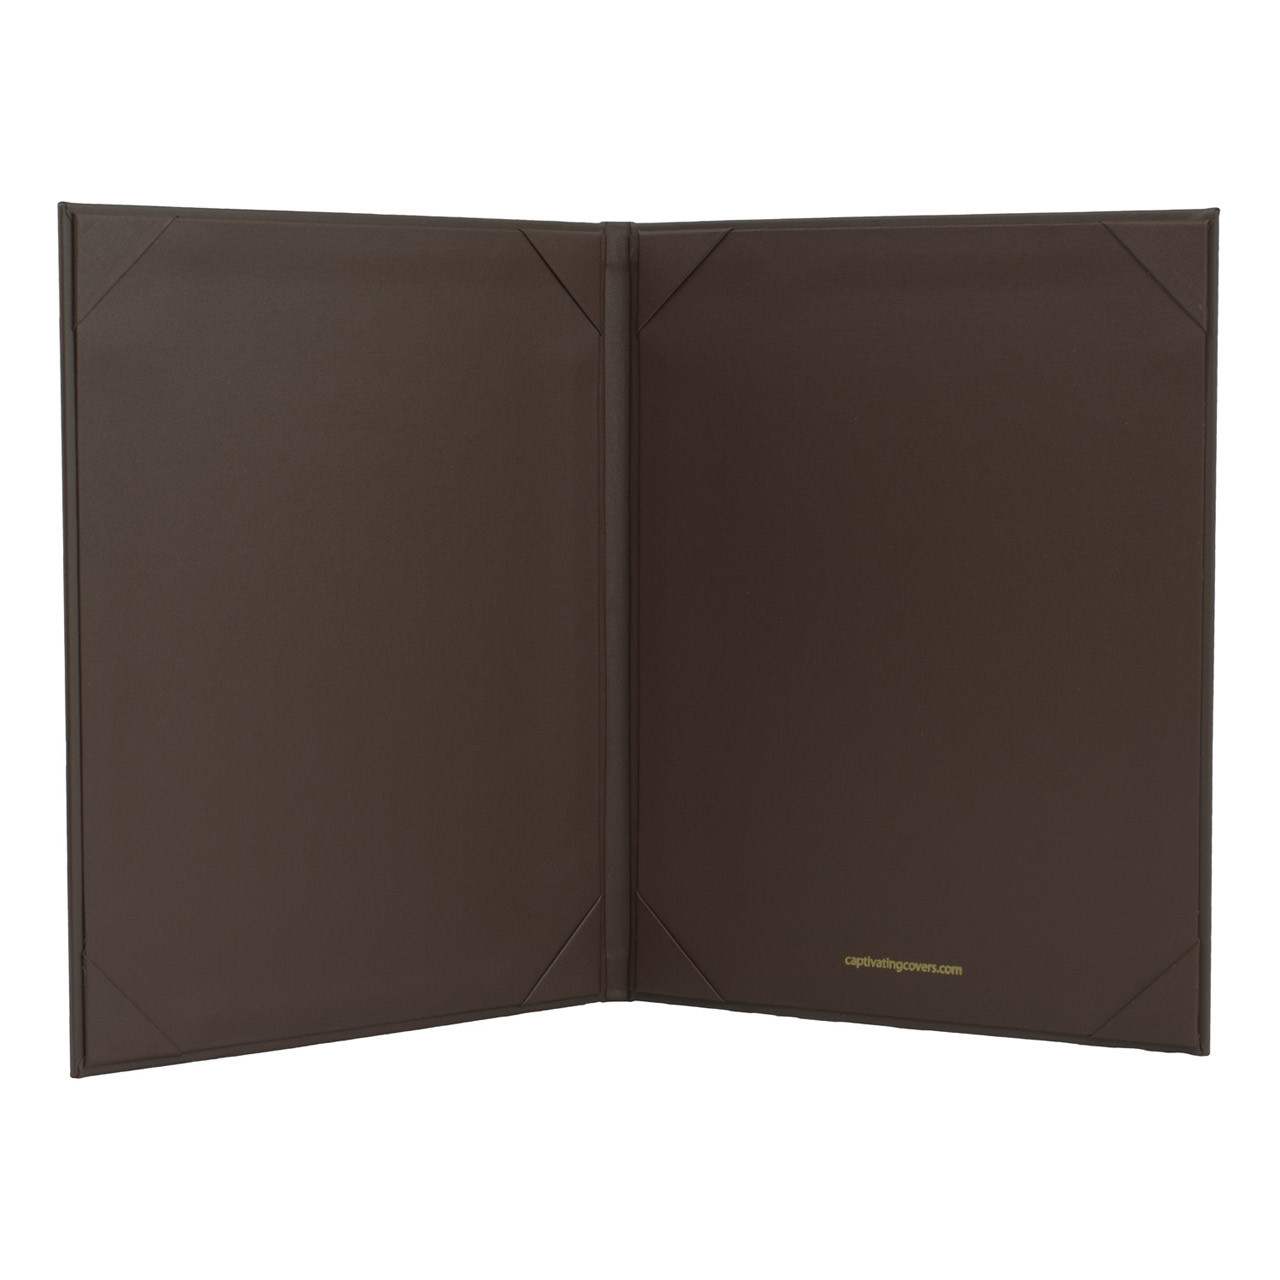 Dark Brown (Chocolate) Menu Cover for 8.5 in. x 11 in. Insert, 2-Panels (inside view)